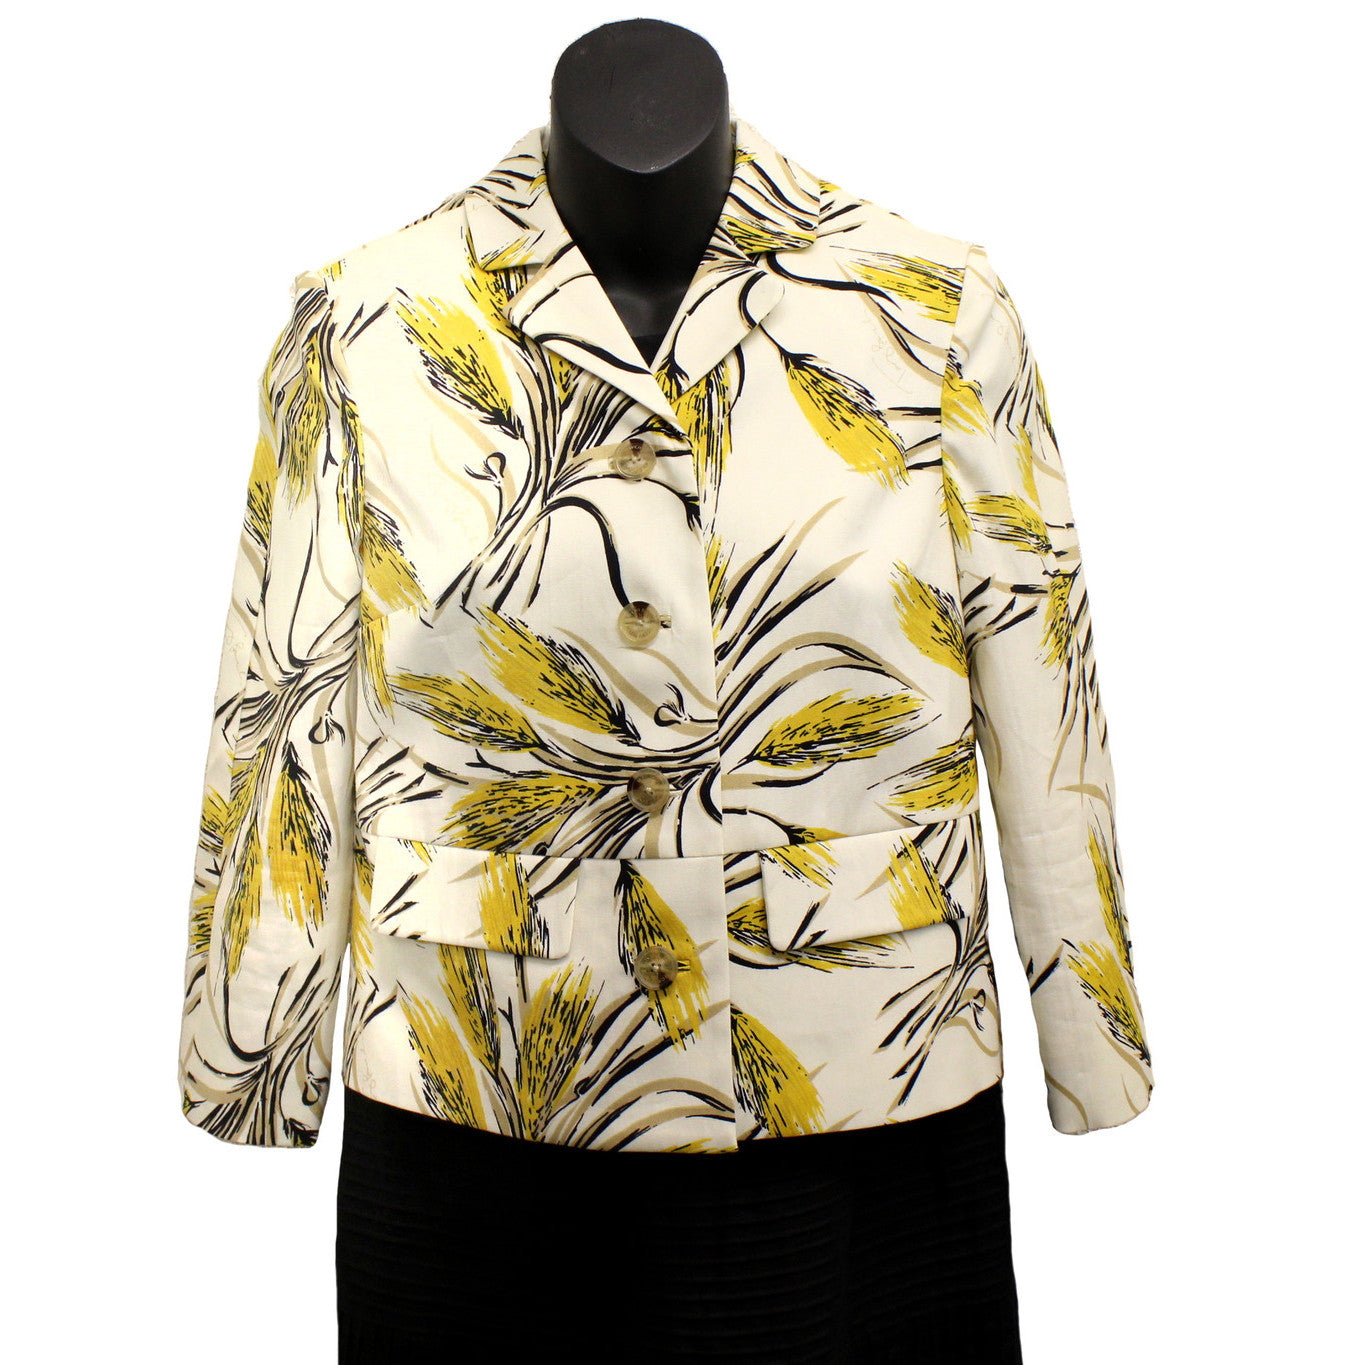 Tory Burch Yellow Wheat 'Rimon' Printed Jacket (Size 2) - Encore Consignment - 1